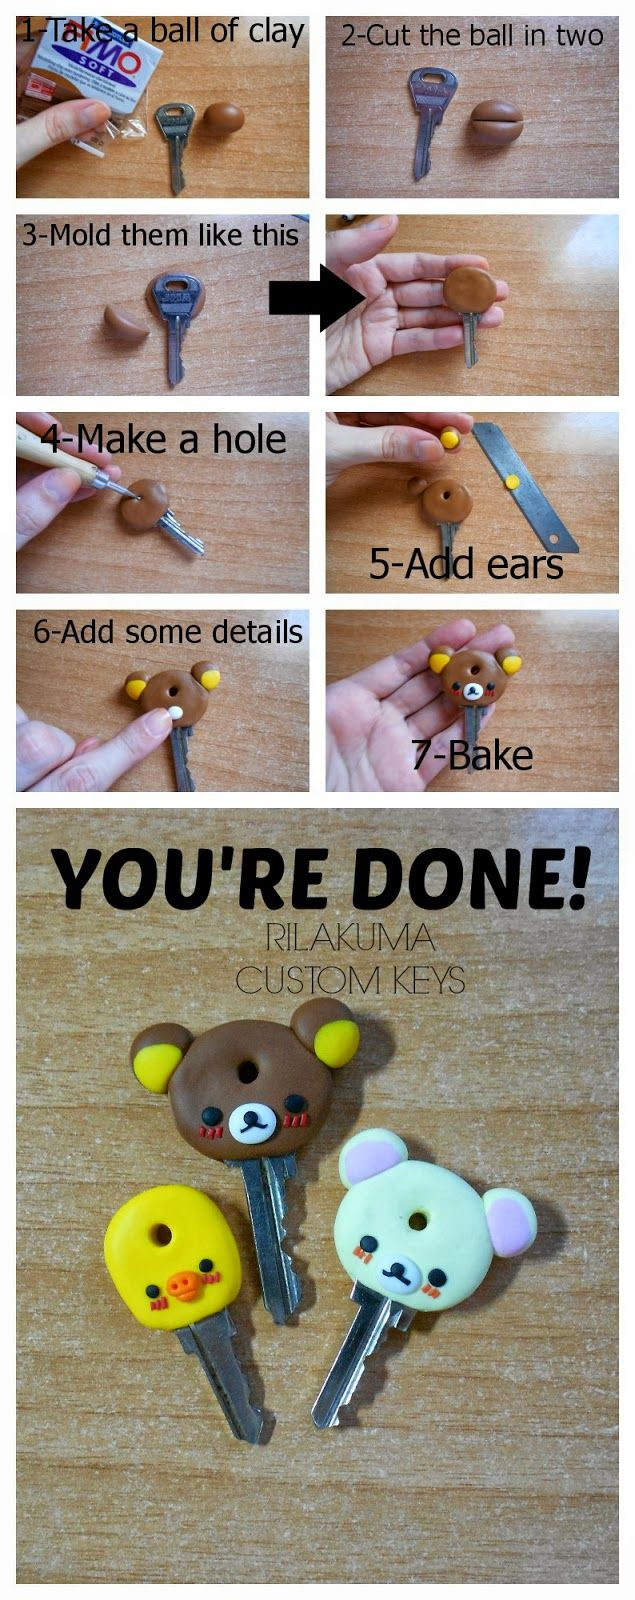 DIY Rilakkuma polymer clay custom keys tutorial https://www.pinterest.com/dijohn13/polymer-clay-charms/